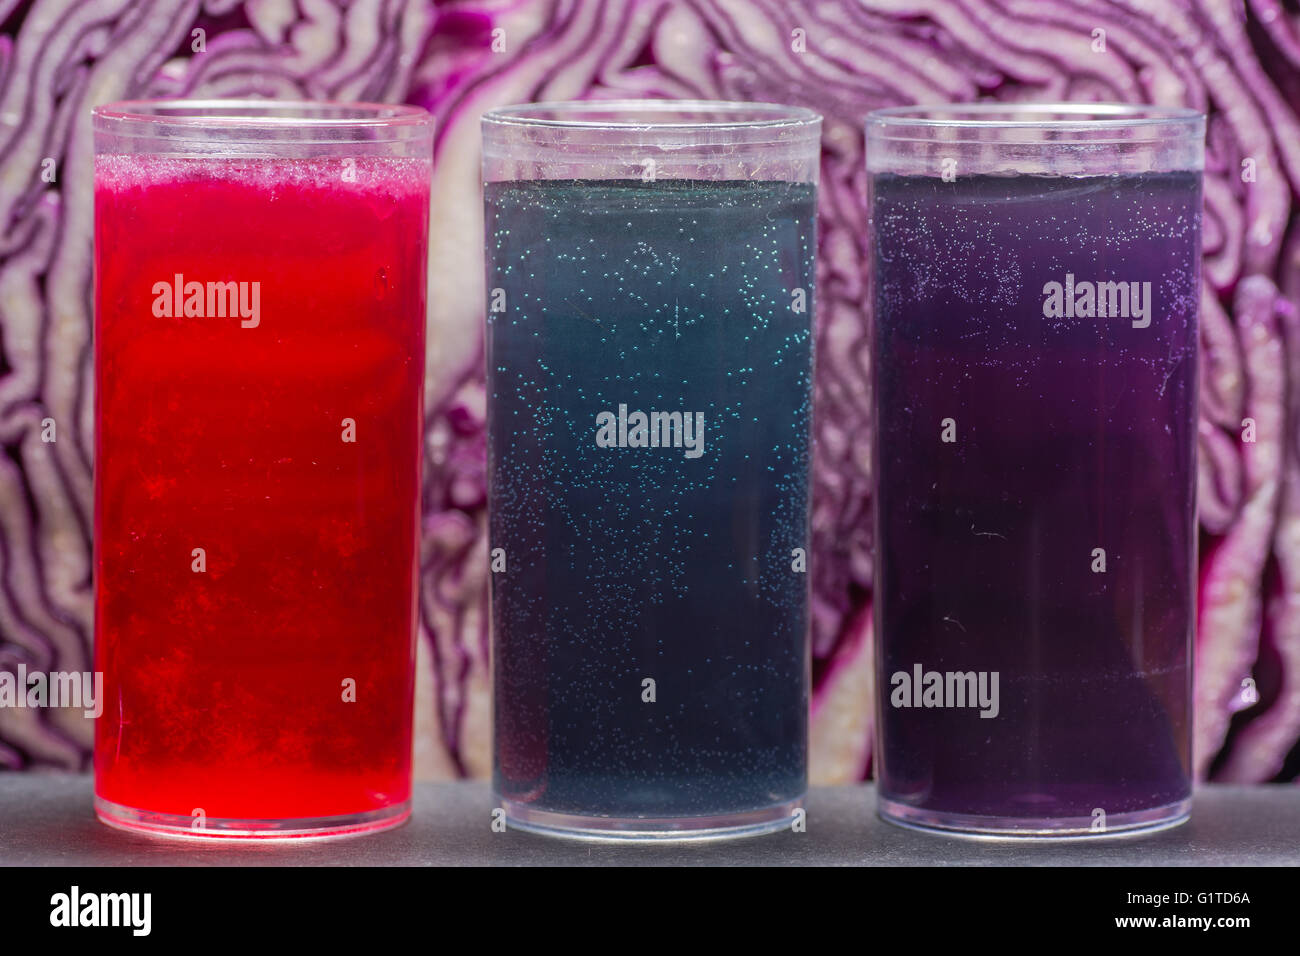 Red cabbage pH indicator solution. Acidic lemon juice (red), alkali sodium bicarbonate (blue) and neutral water - Stock Image